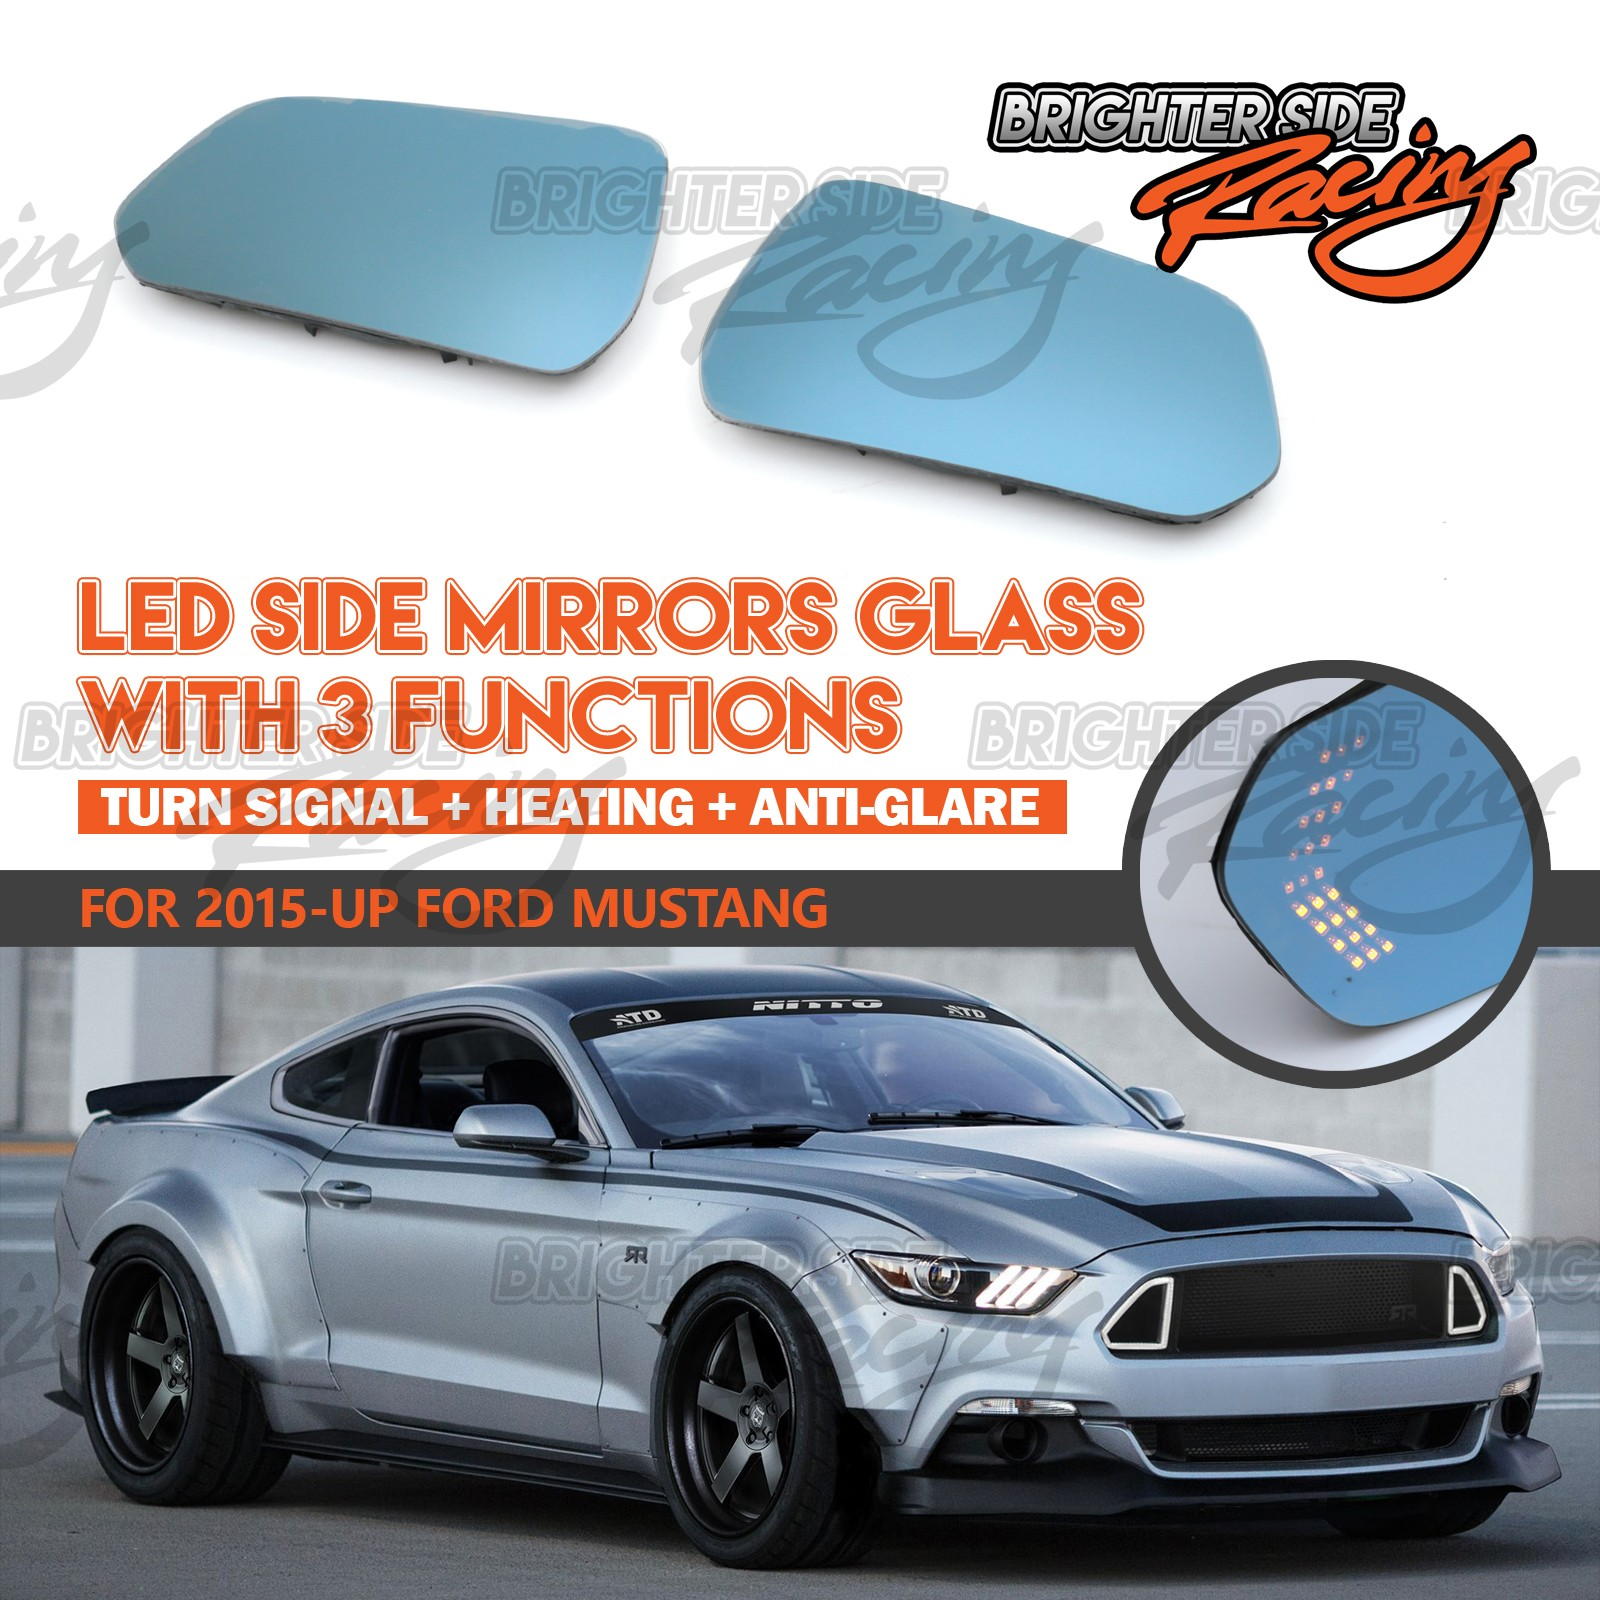 Upgrade your stock side mirrors with led signal arrows